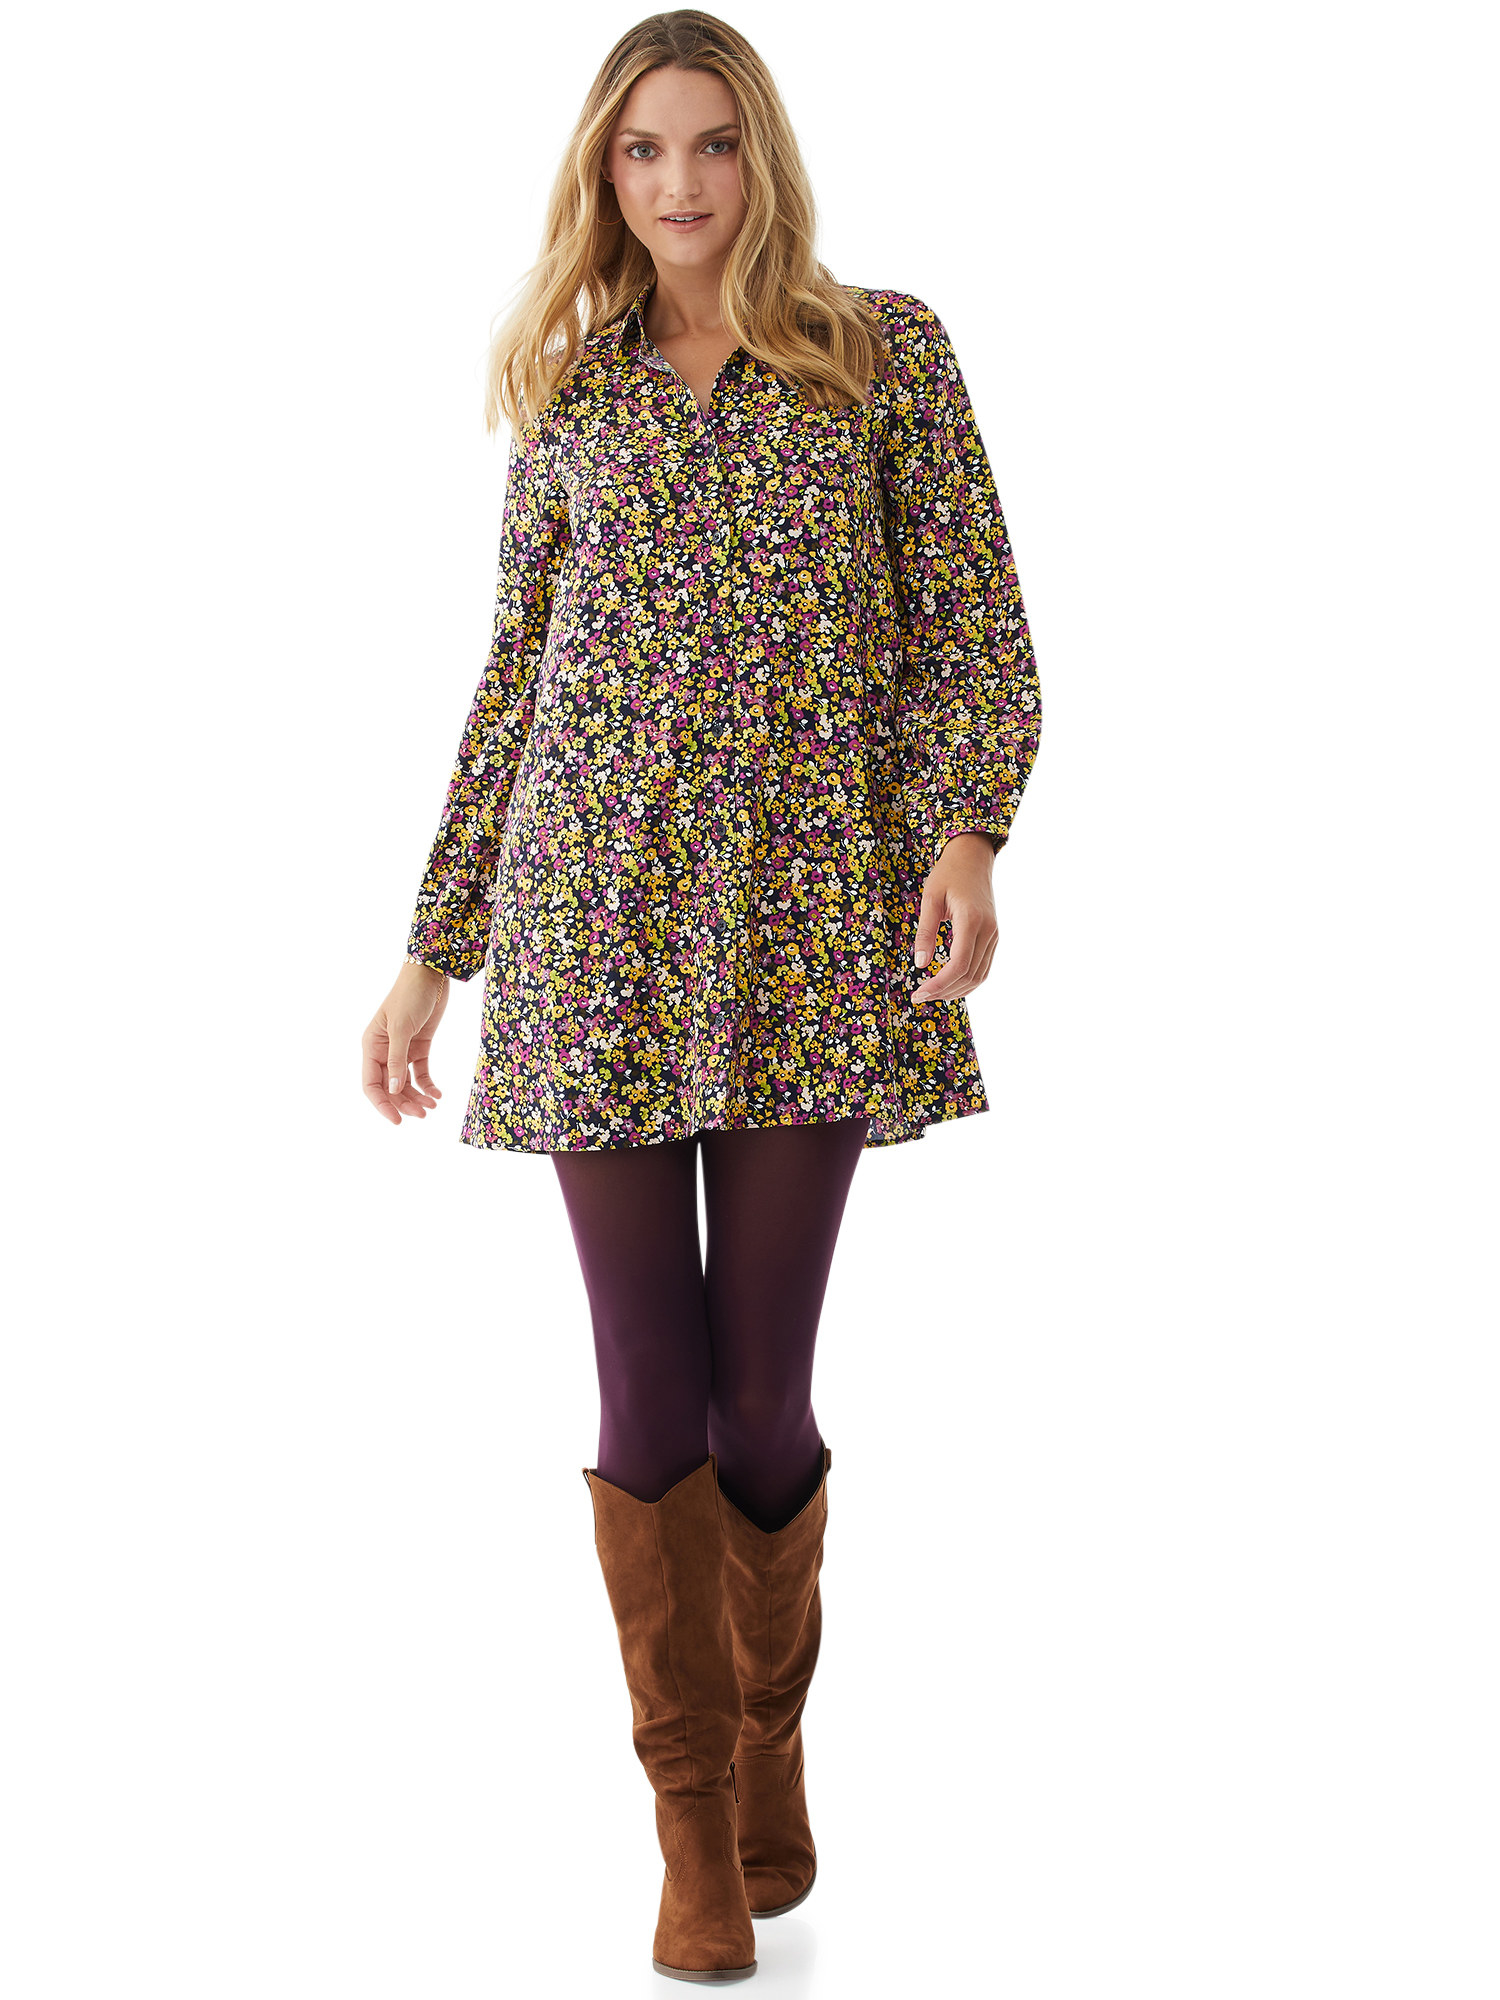 person wearing floral shirtdress with purple leggings and brown boots